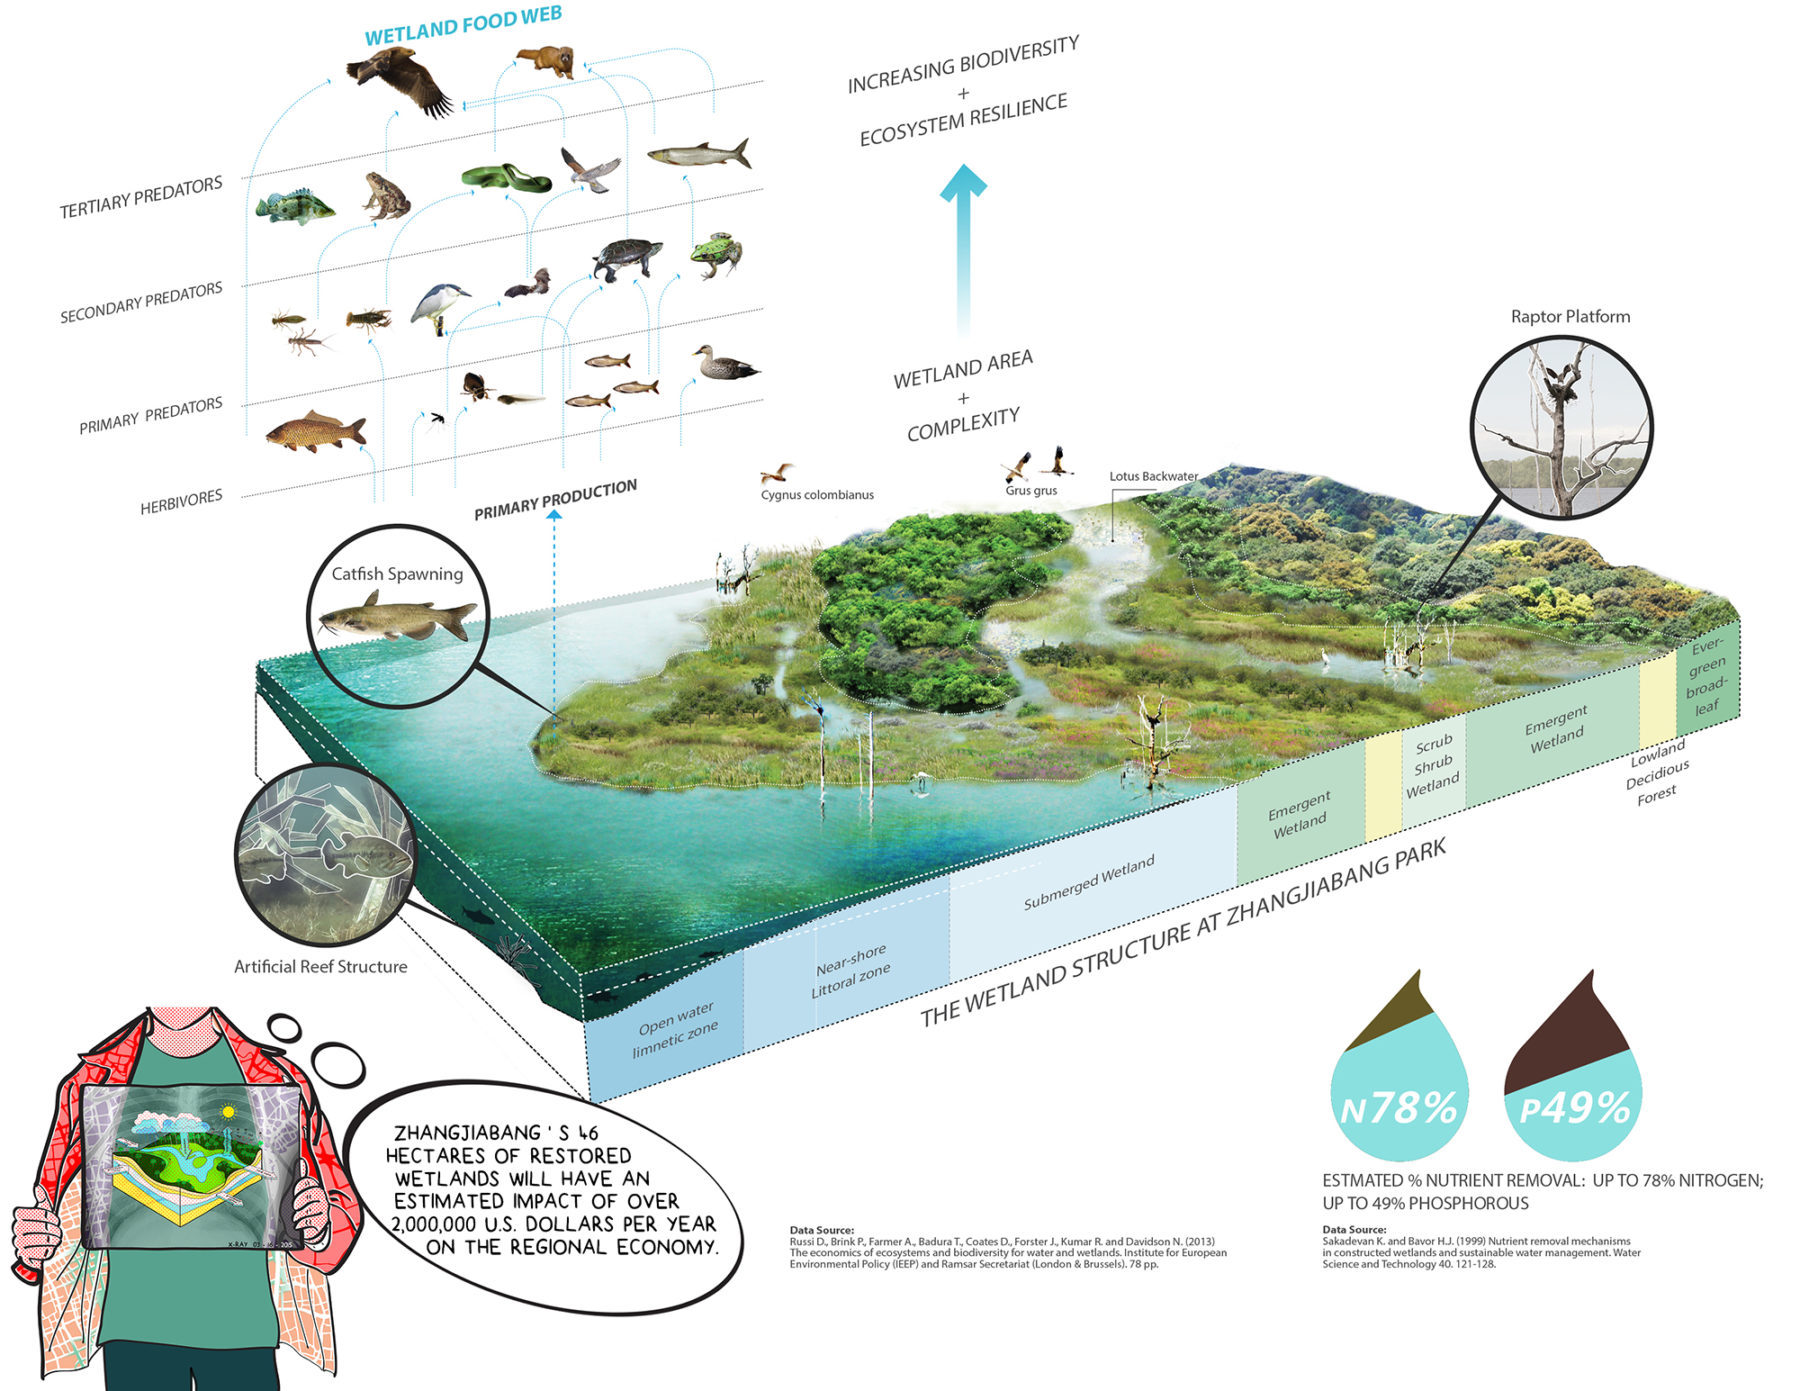 Section perspective rendering of the park's wetland structure and marine life